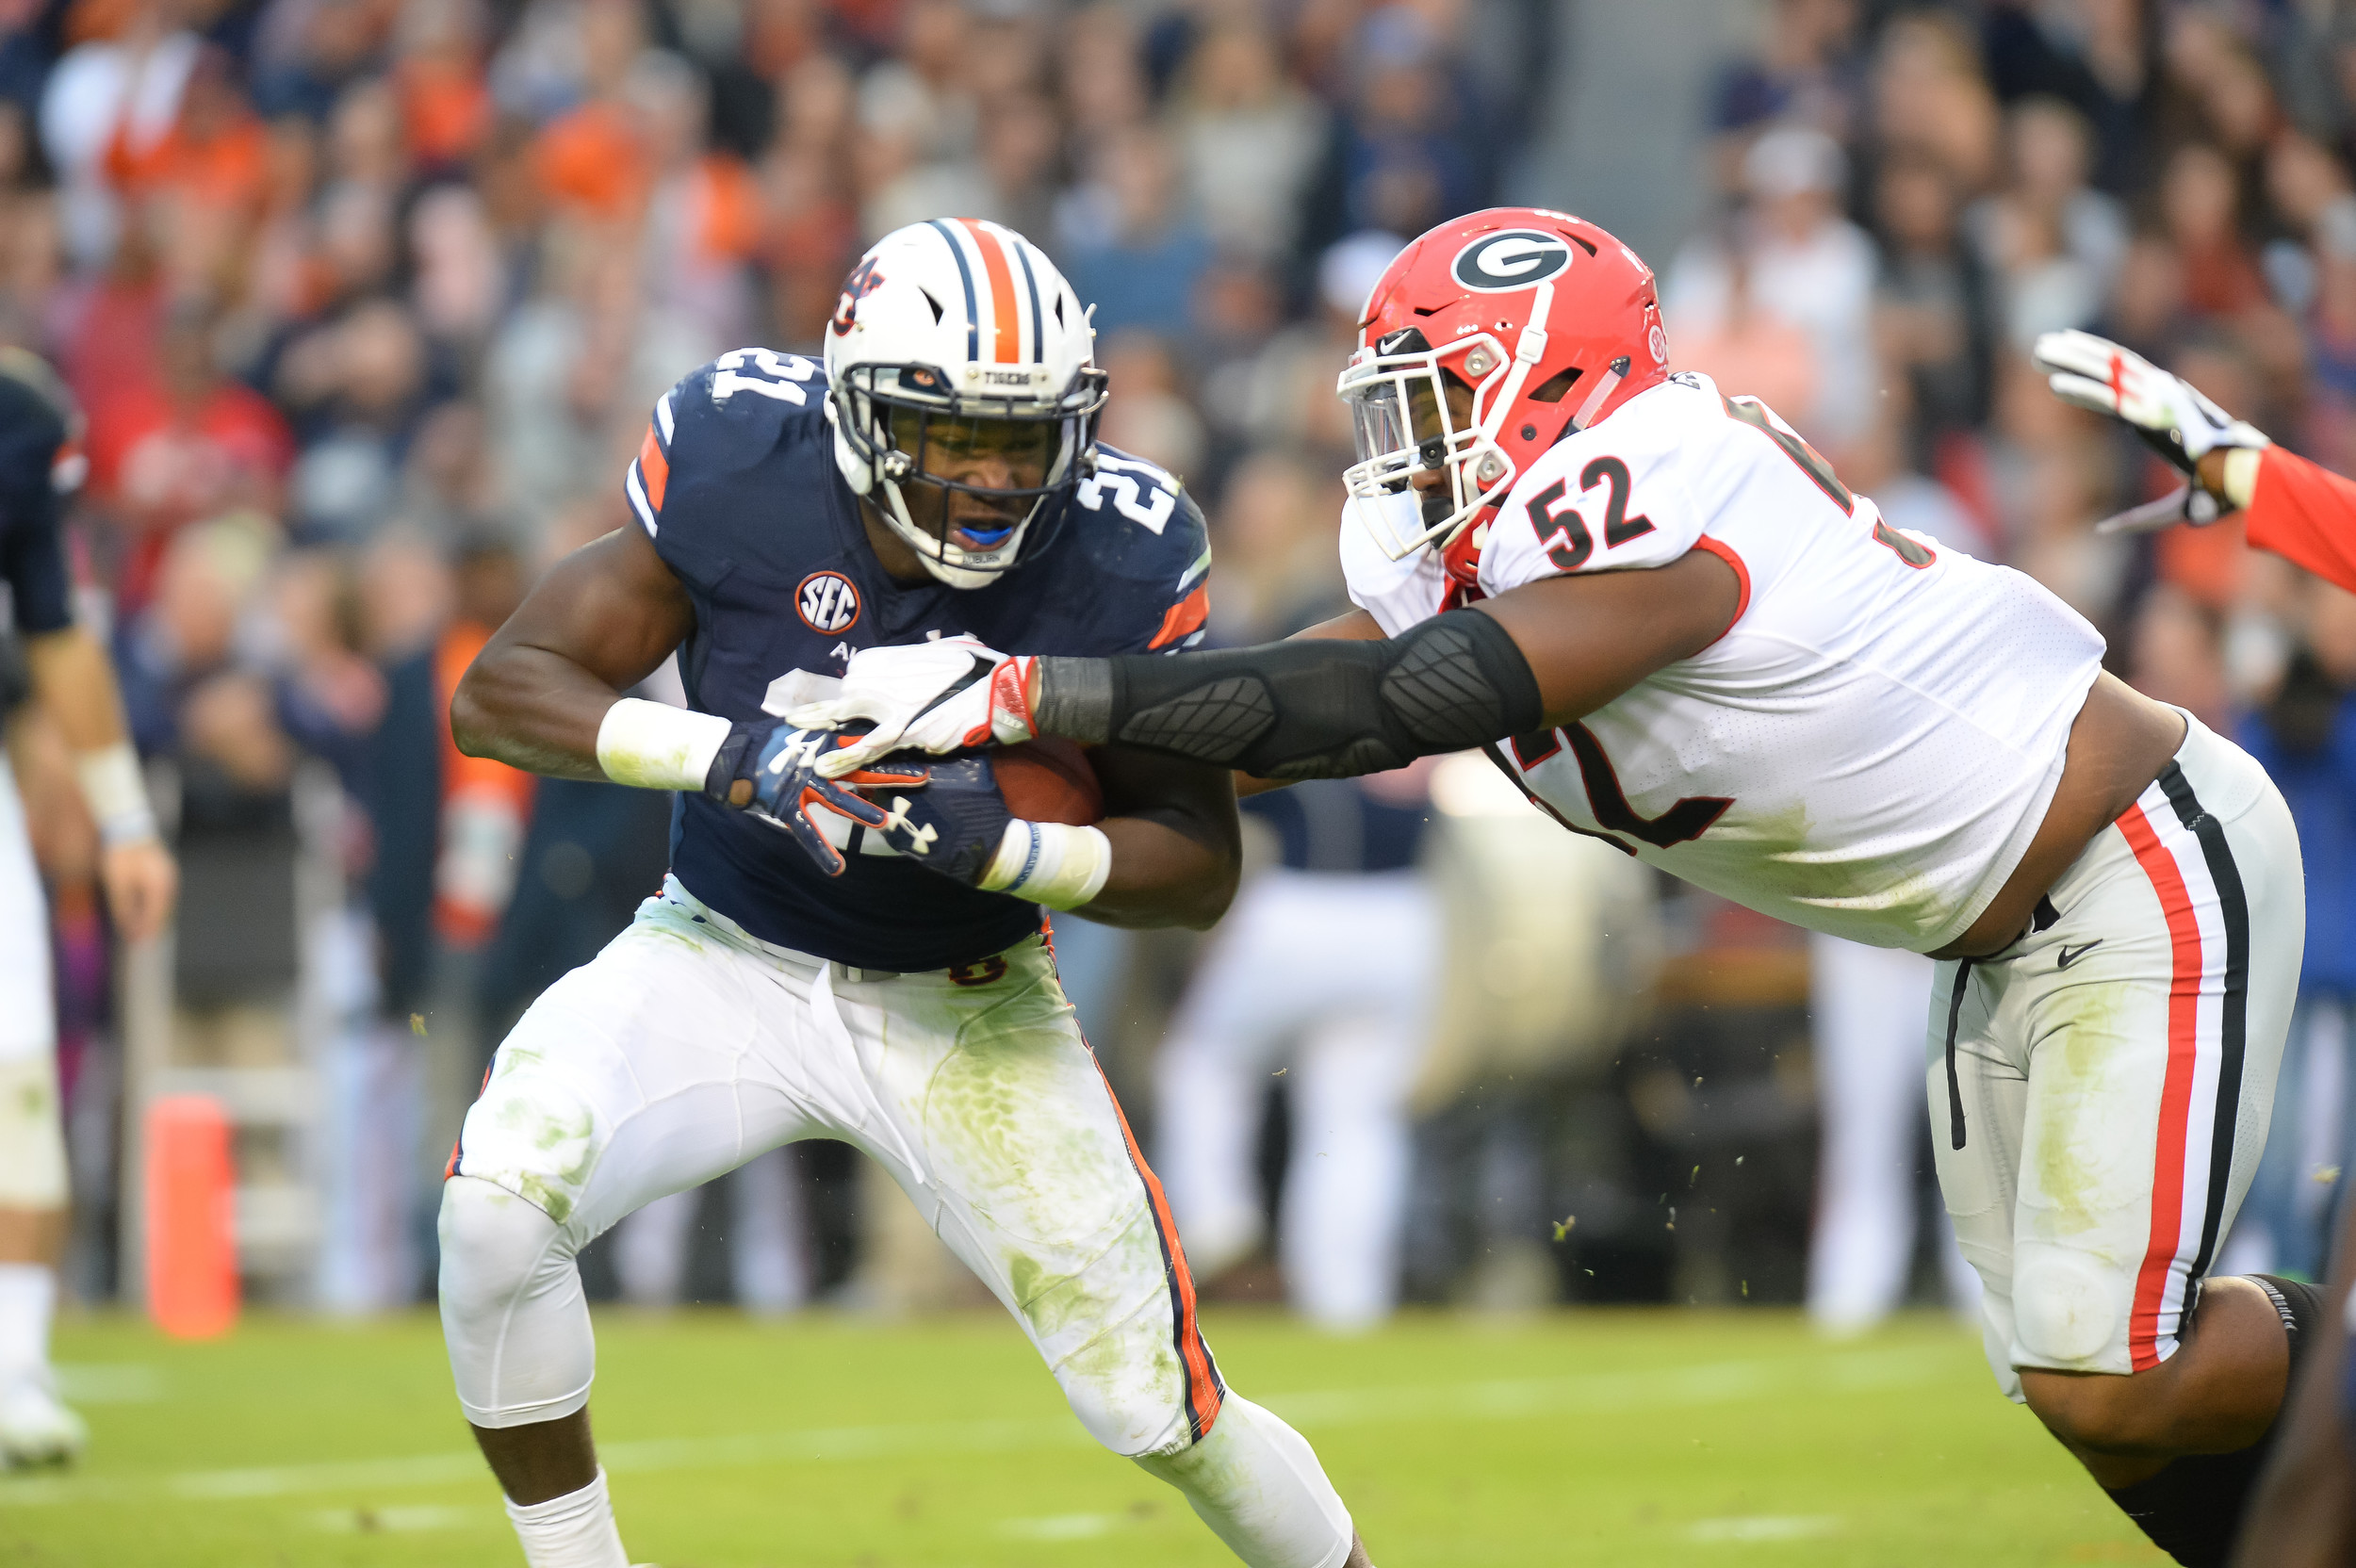 Auburn Tigers running back Kerryon Johnson (21) is tackled by Georgia Bulldogs defensive lineman Tyler Clark (52) during the first half of Saturday's game, at Jordan-Hare Stadium.